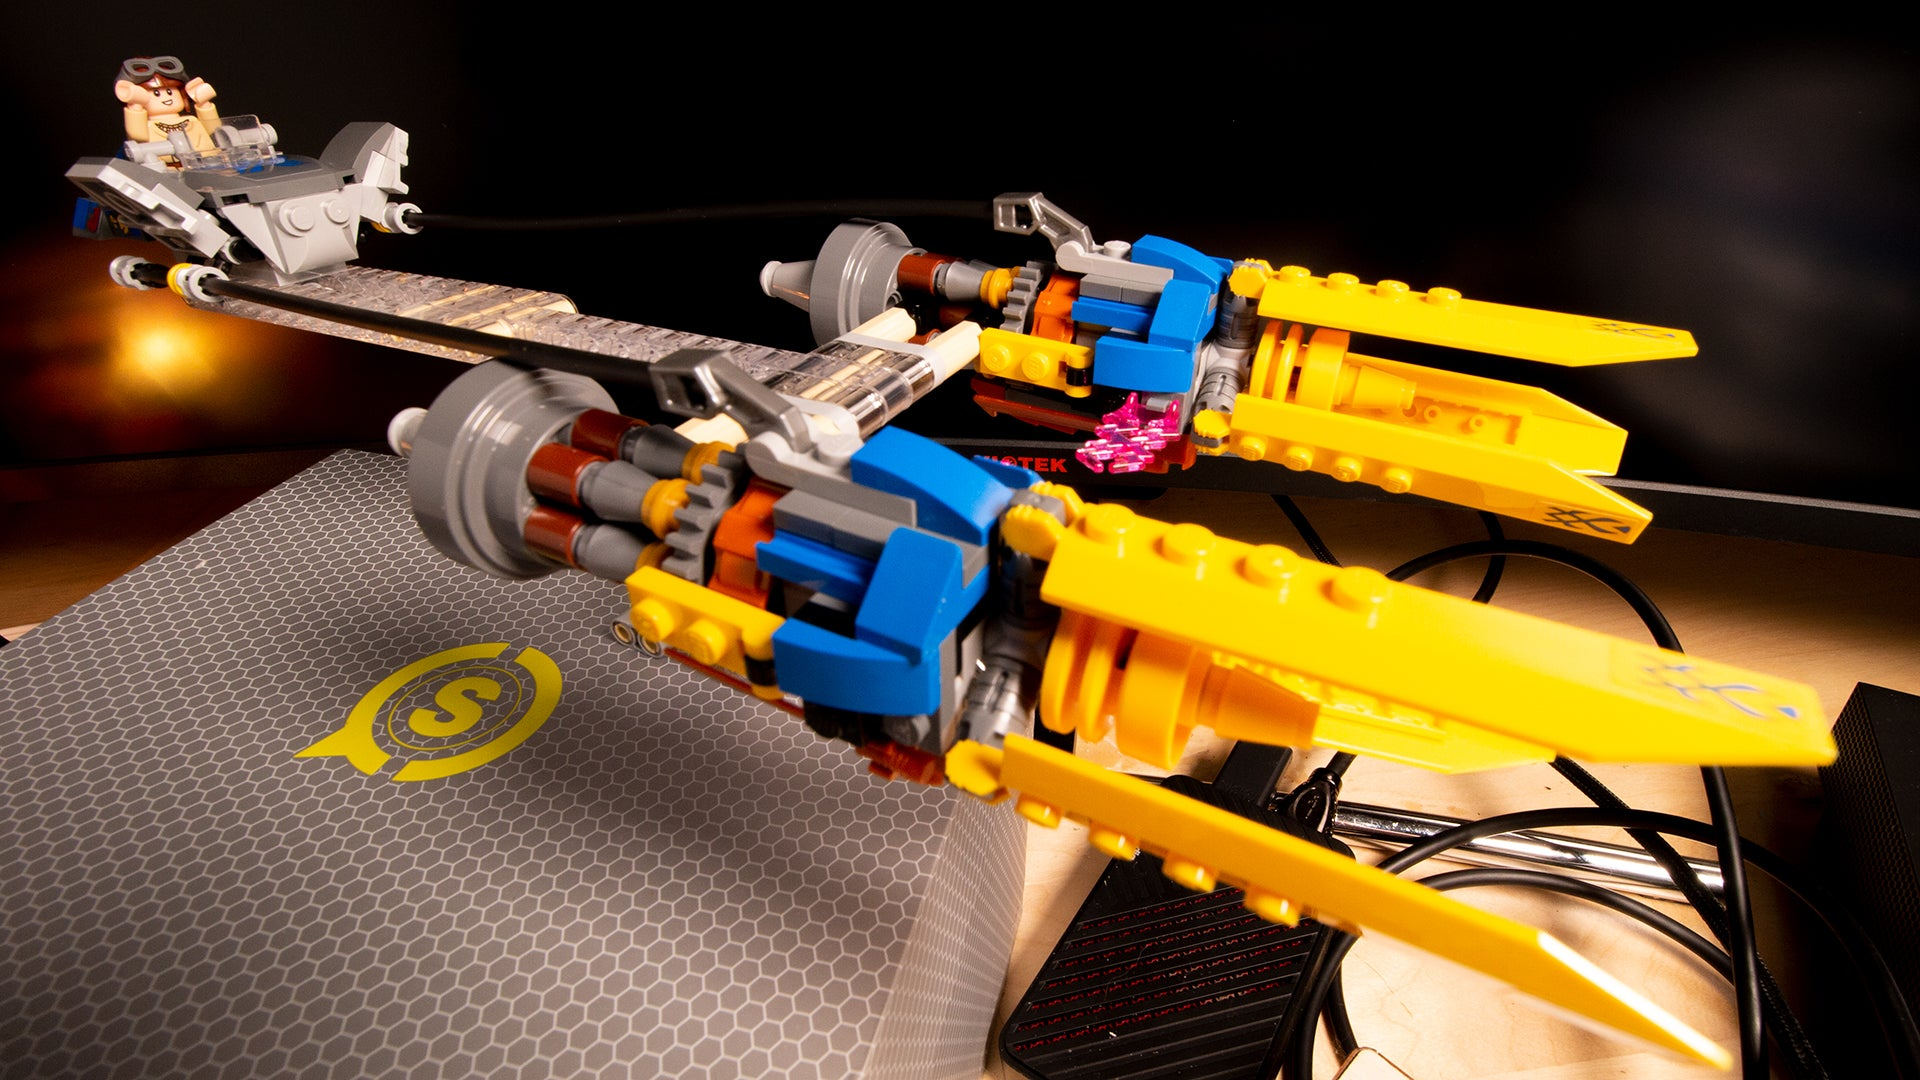 Star Wars Lego Makes Podracing Cool Again